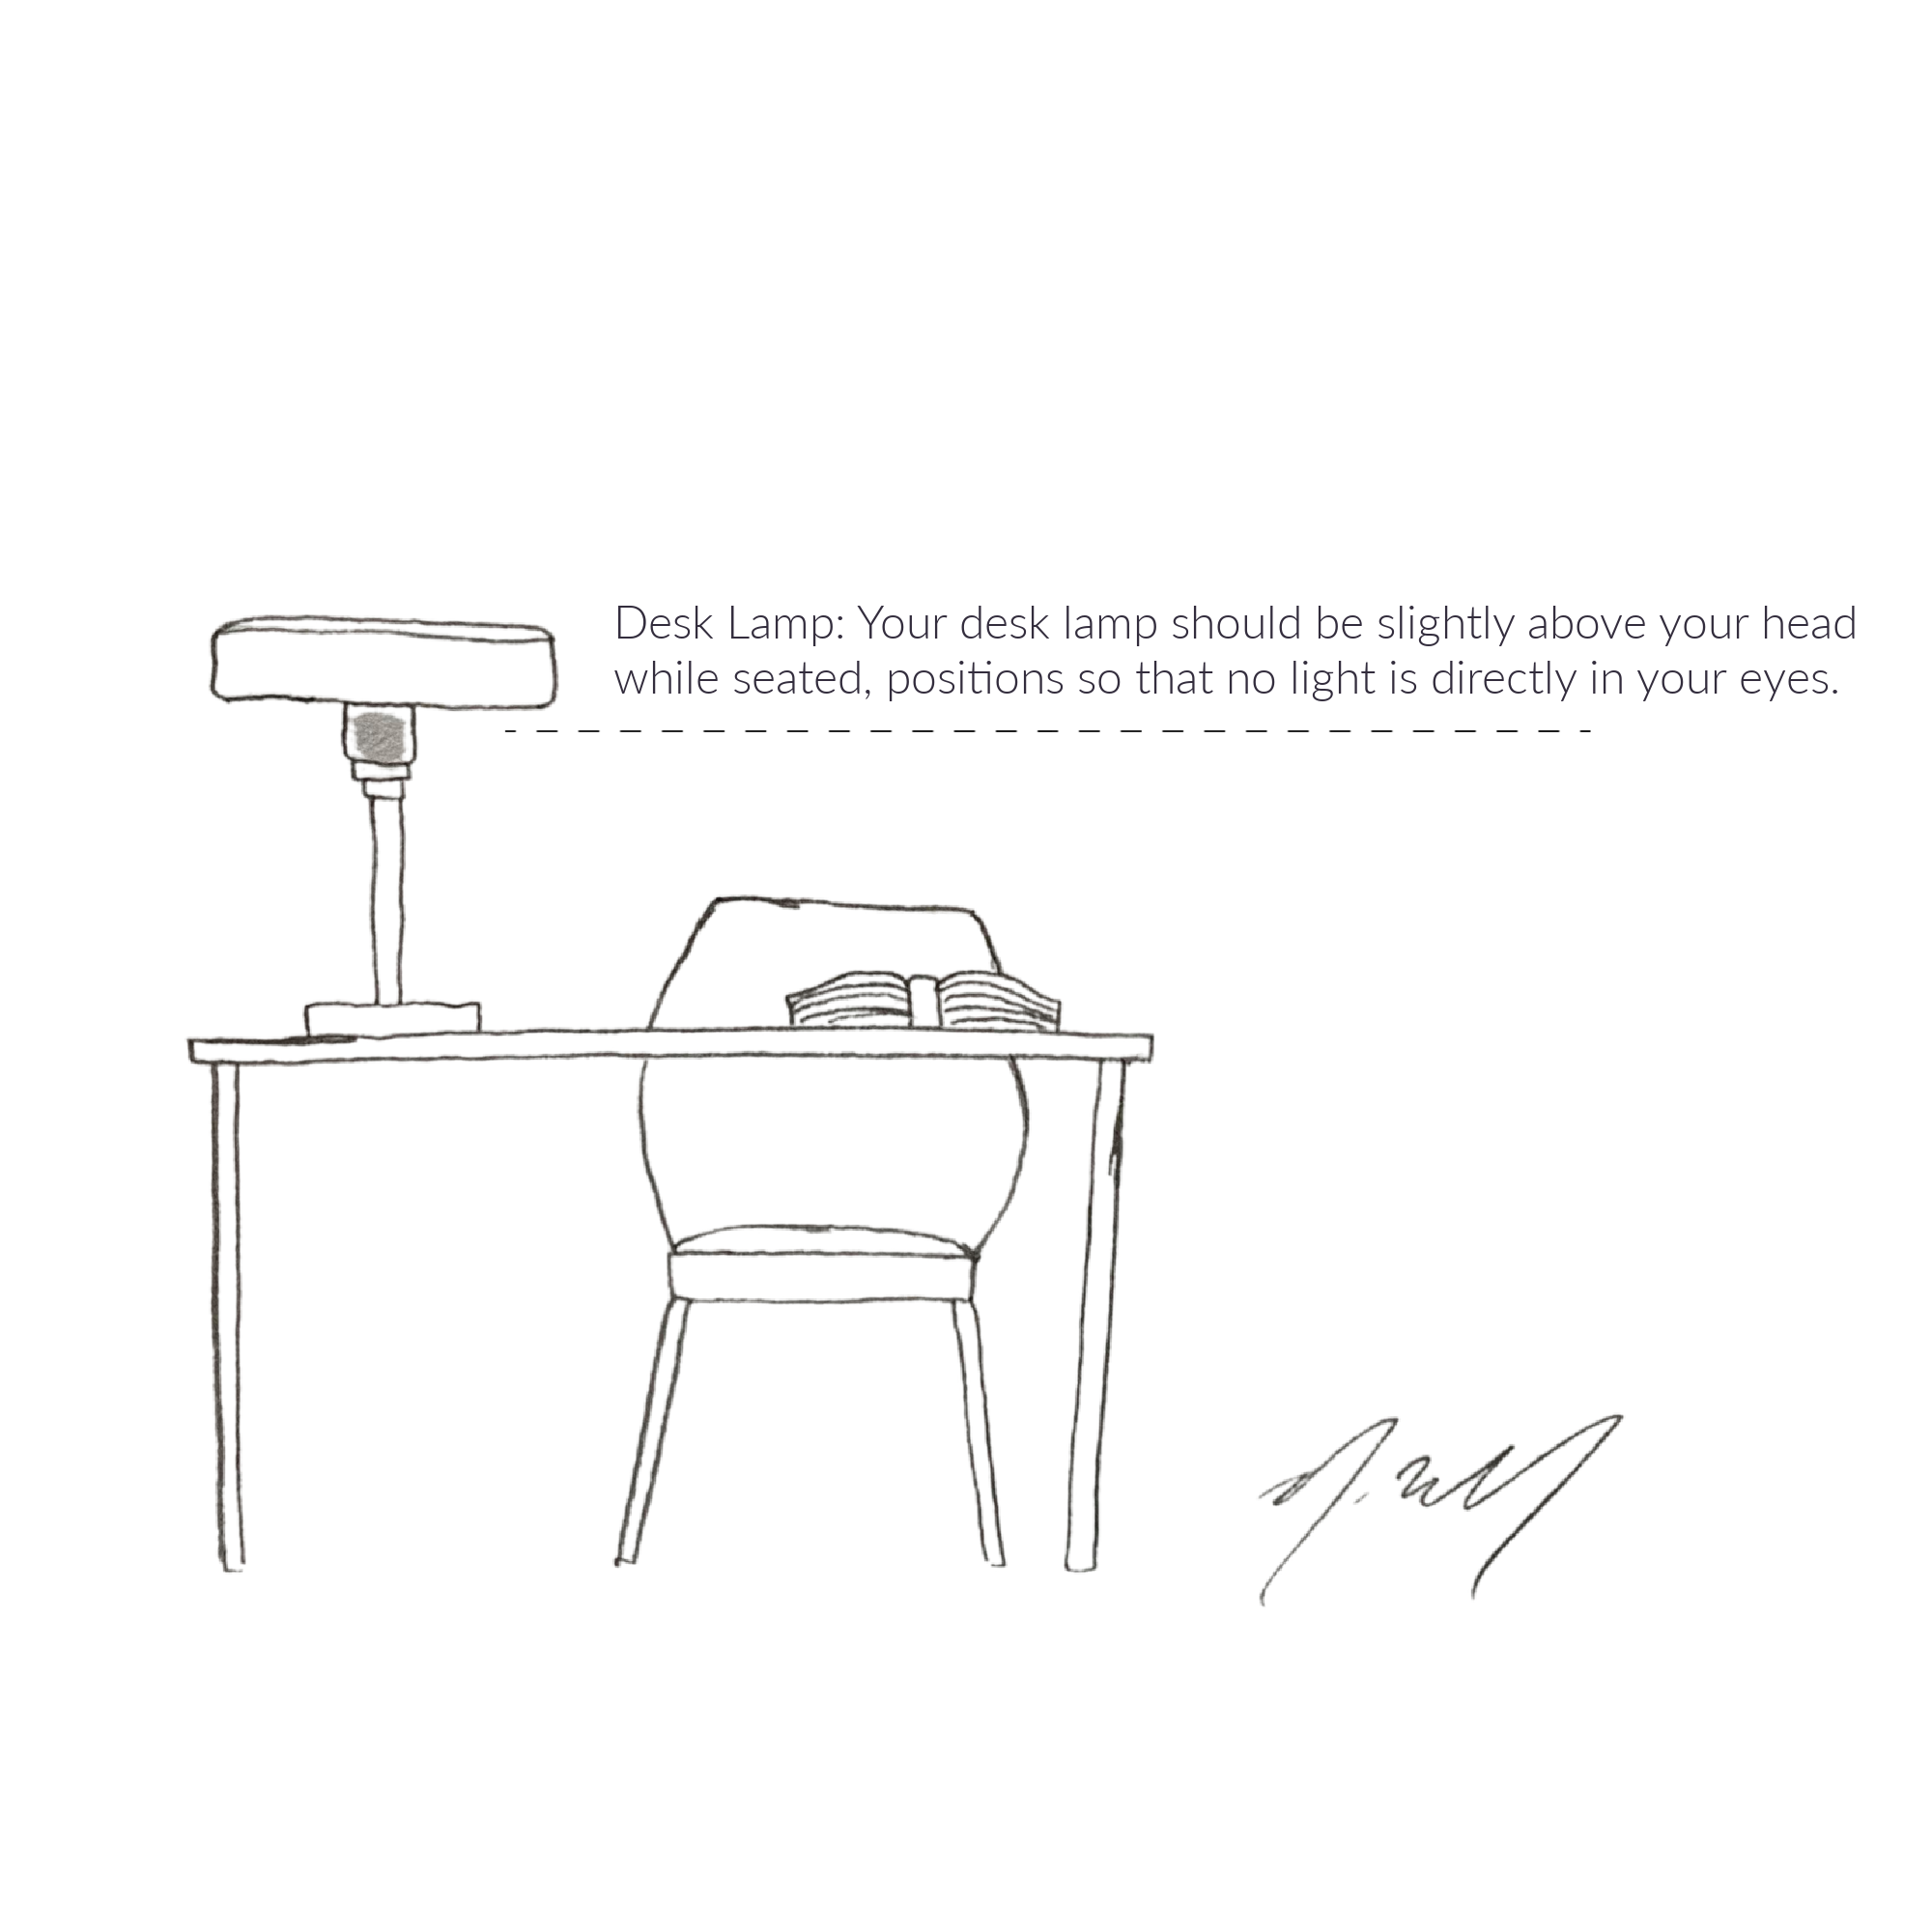 Desk Lamp Tip 2